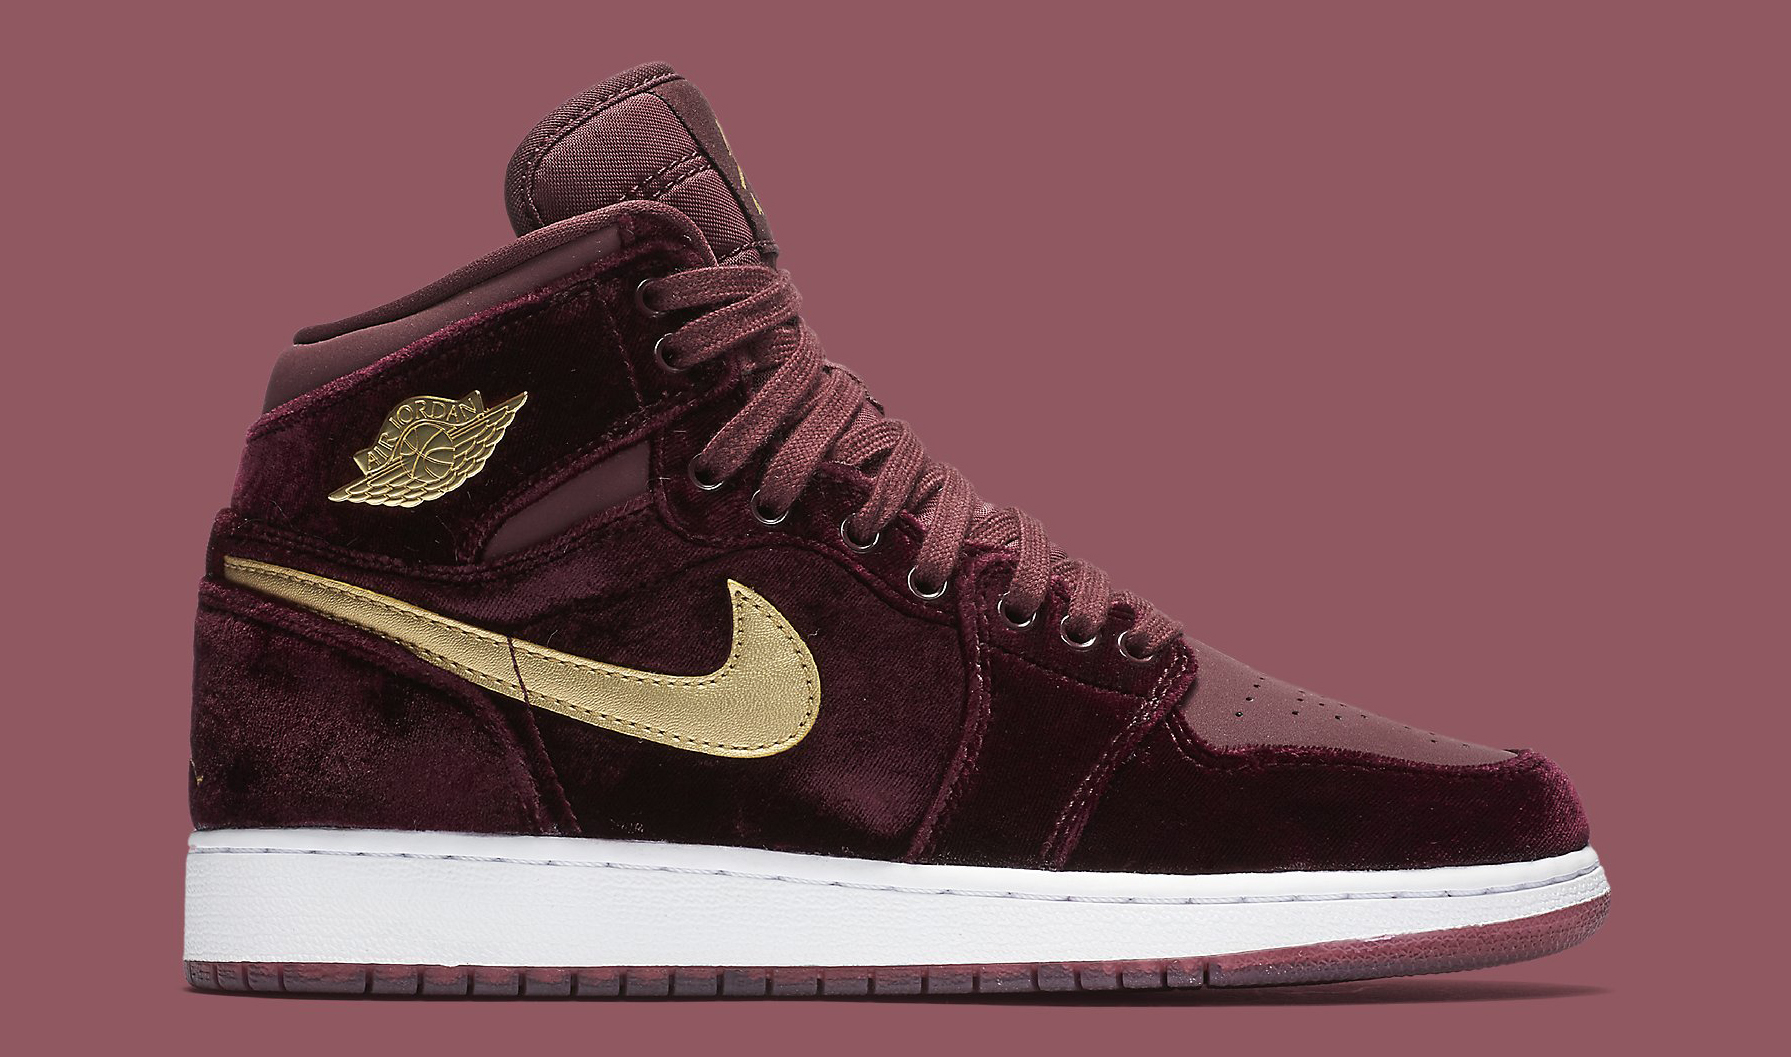 separation shoes 1c97c c8989 Red Velvet Air Jordan 1 Heiress | Sole Collector